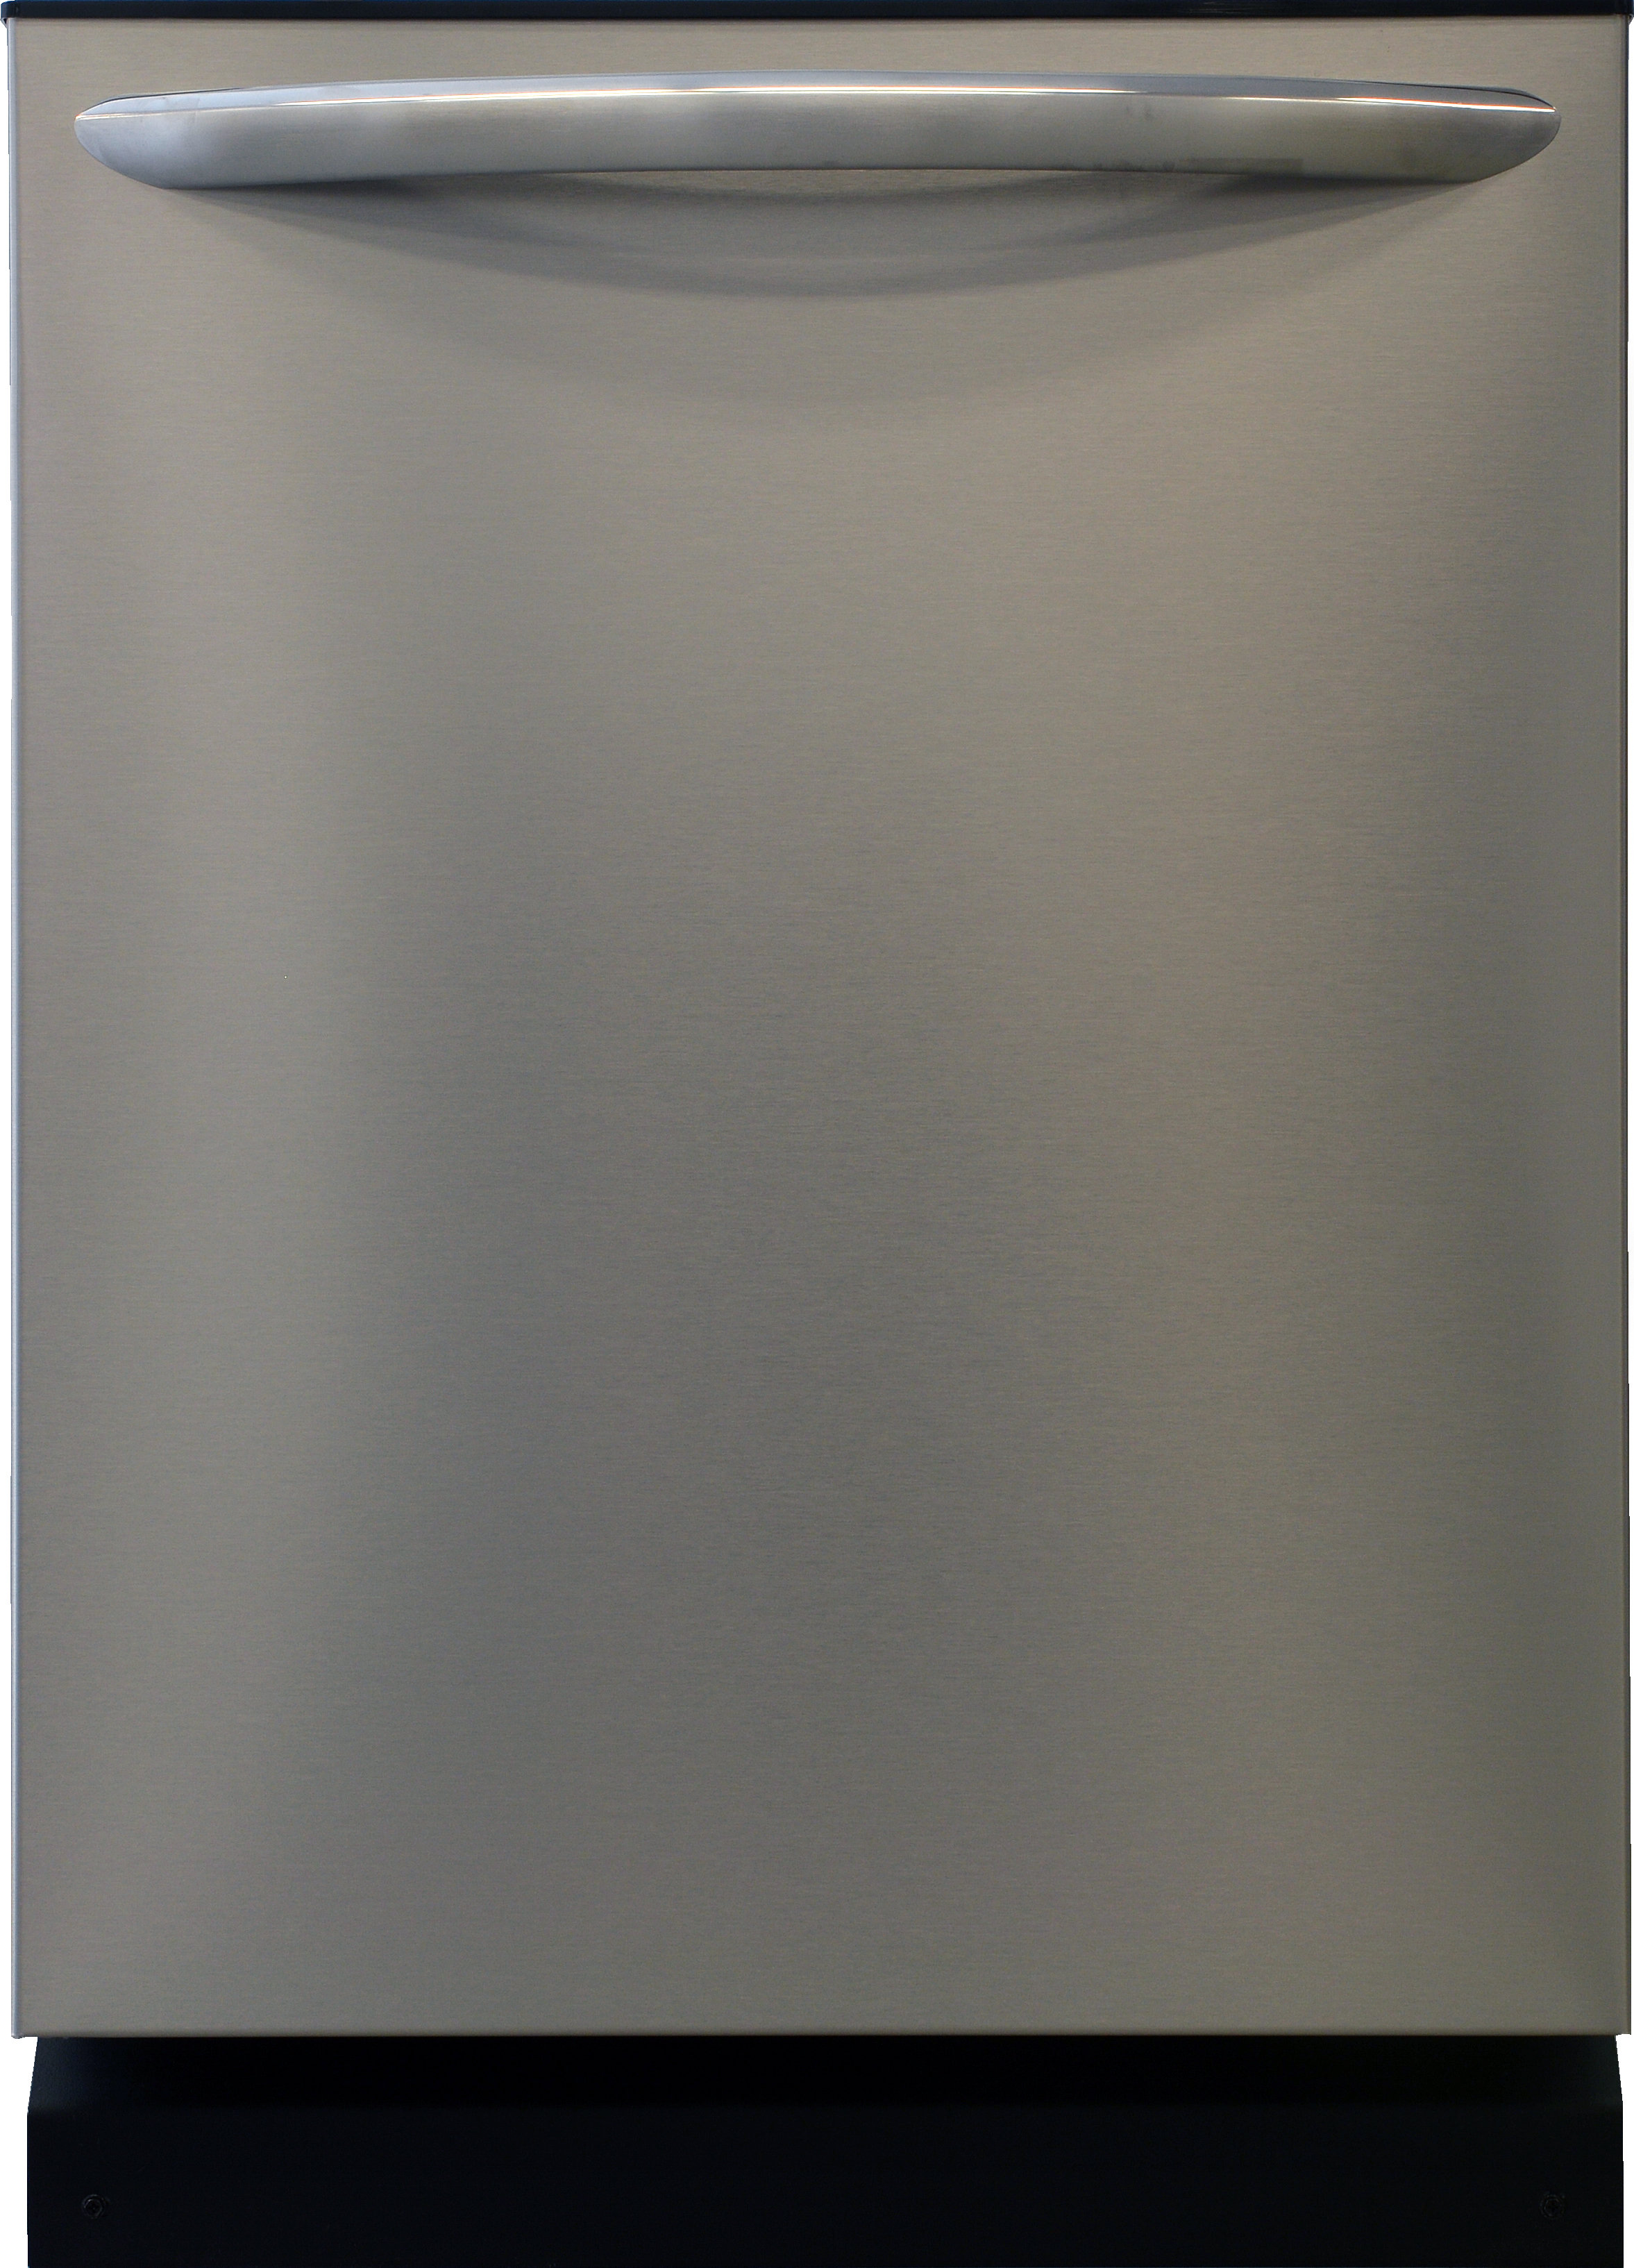 Frigidaire Gallery Fgid2466qf Dishwasher Review Reviewed